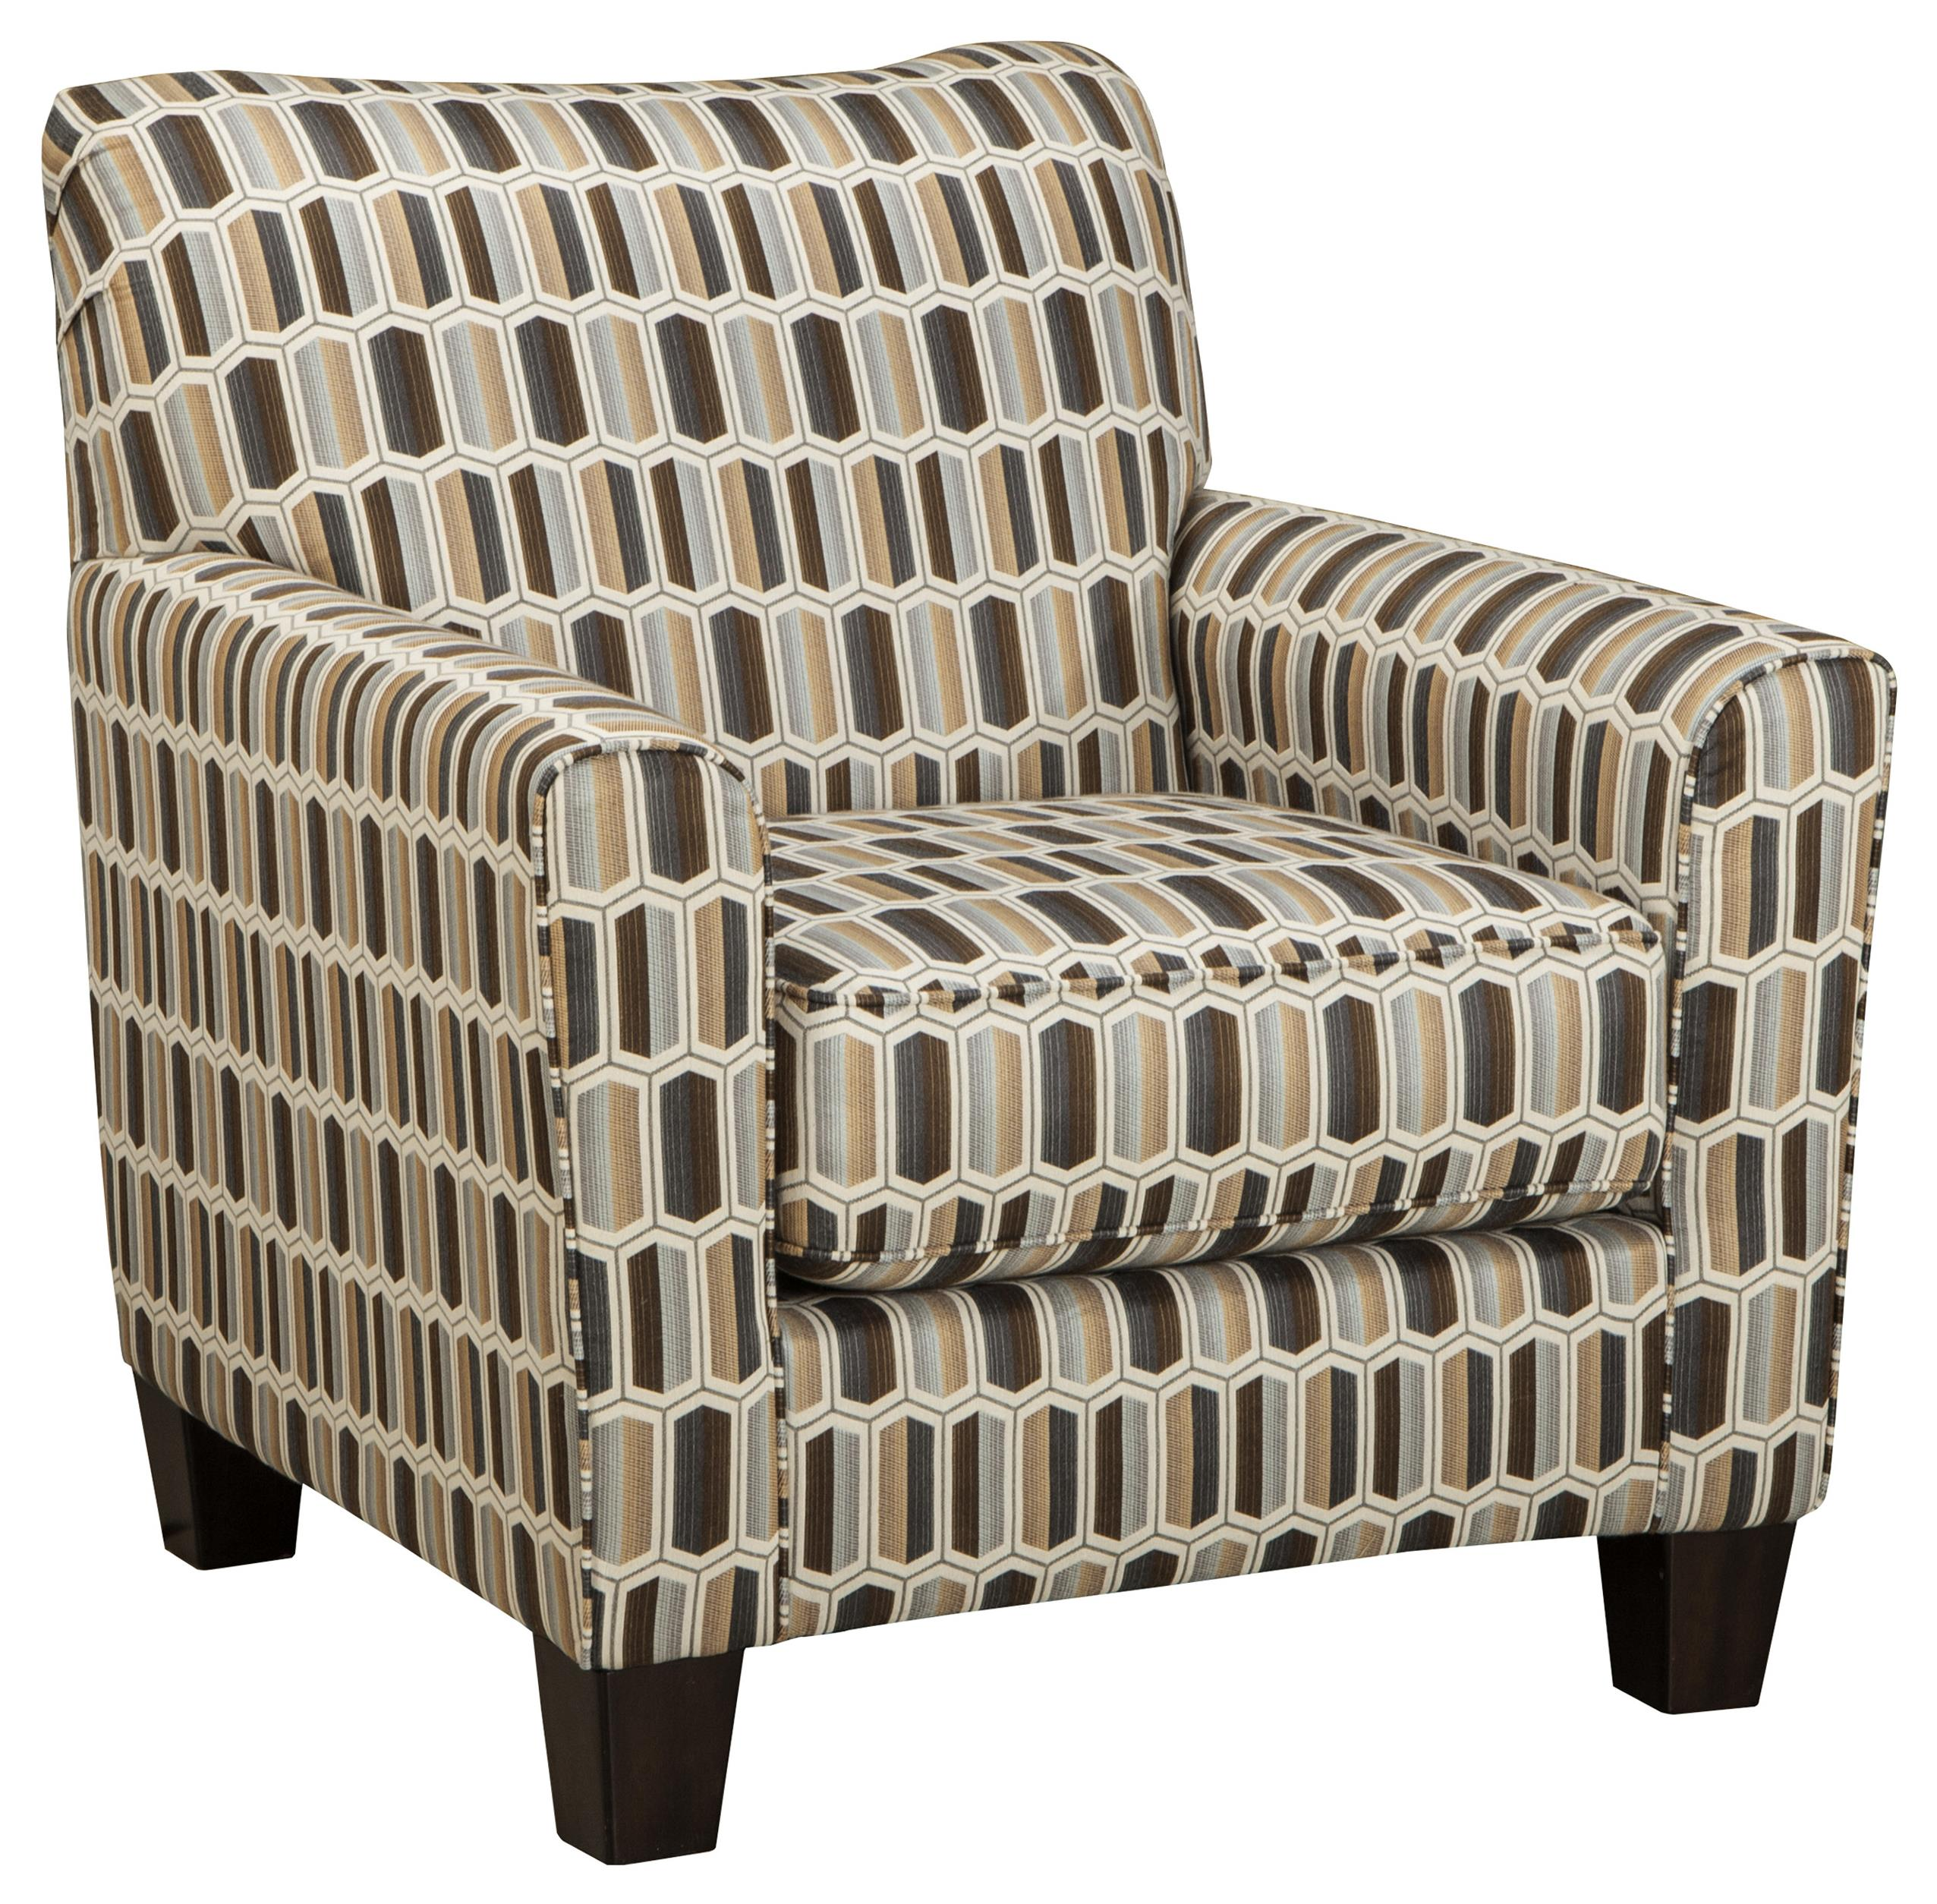 Benchcraft Janley Accent Chair - Item Number: 438XX21